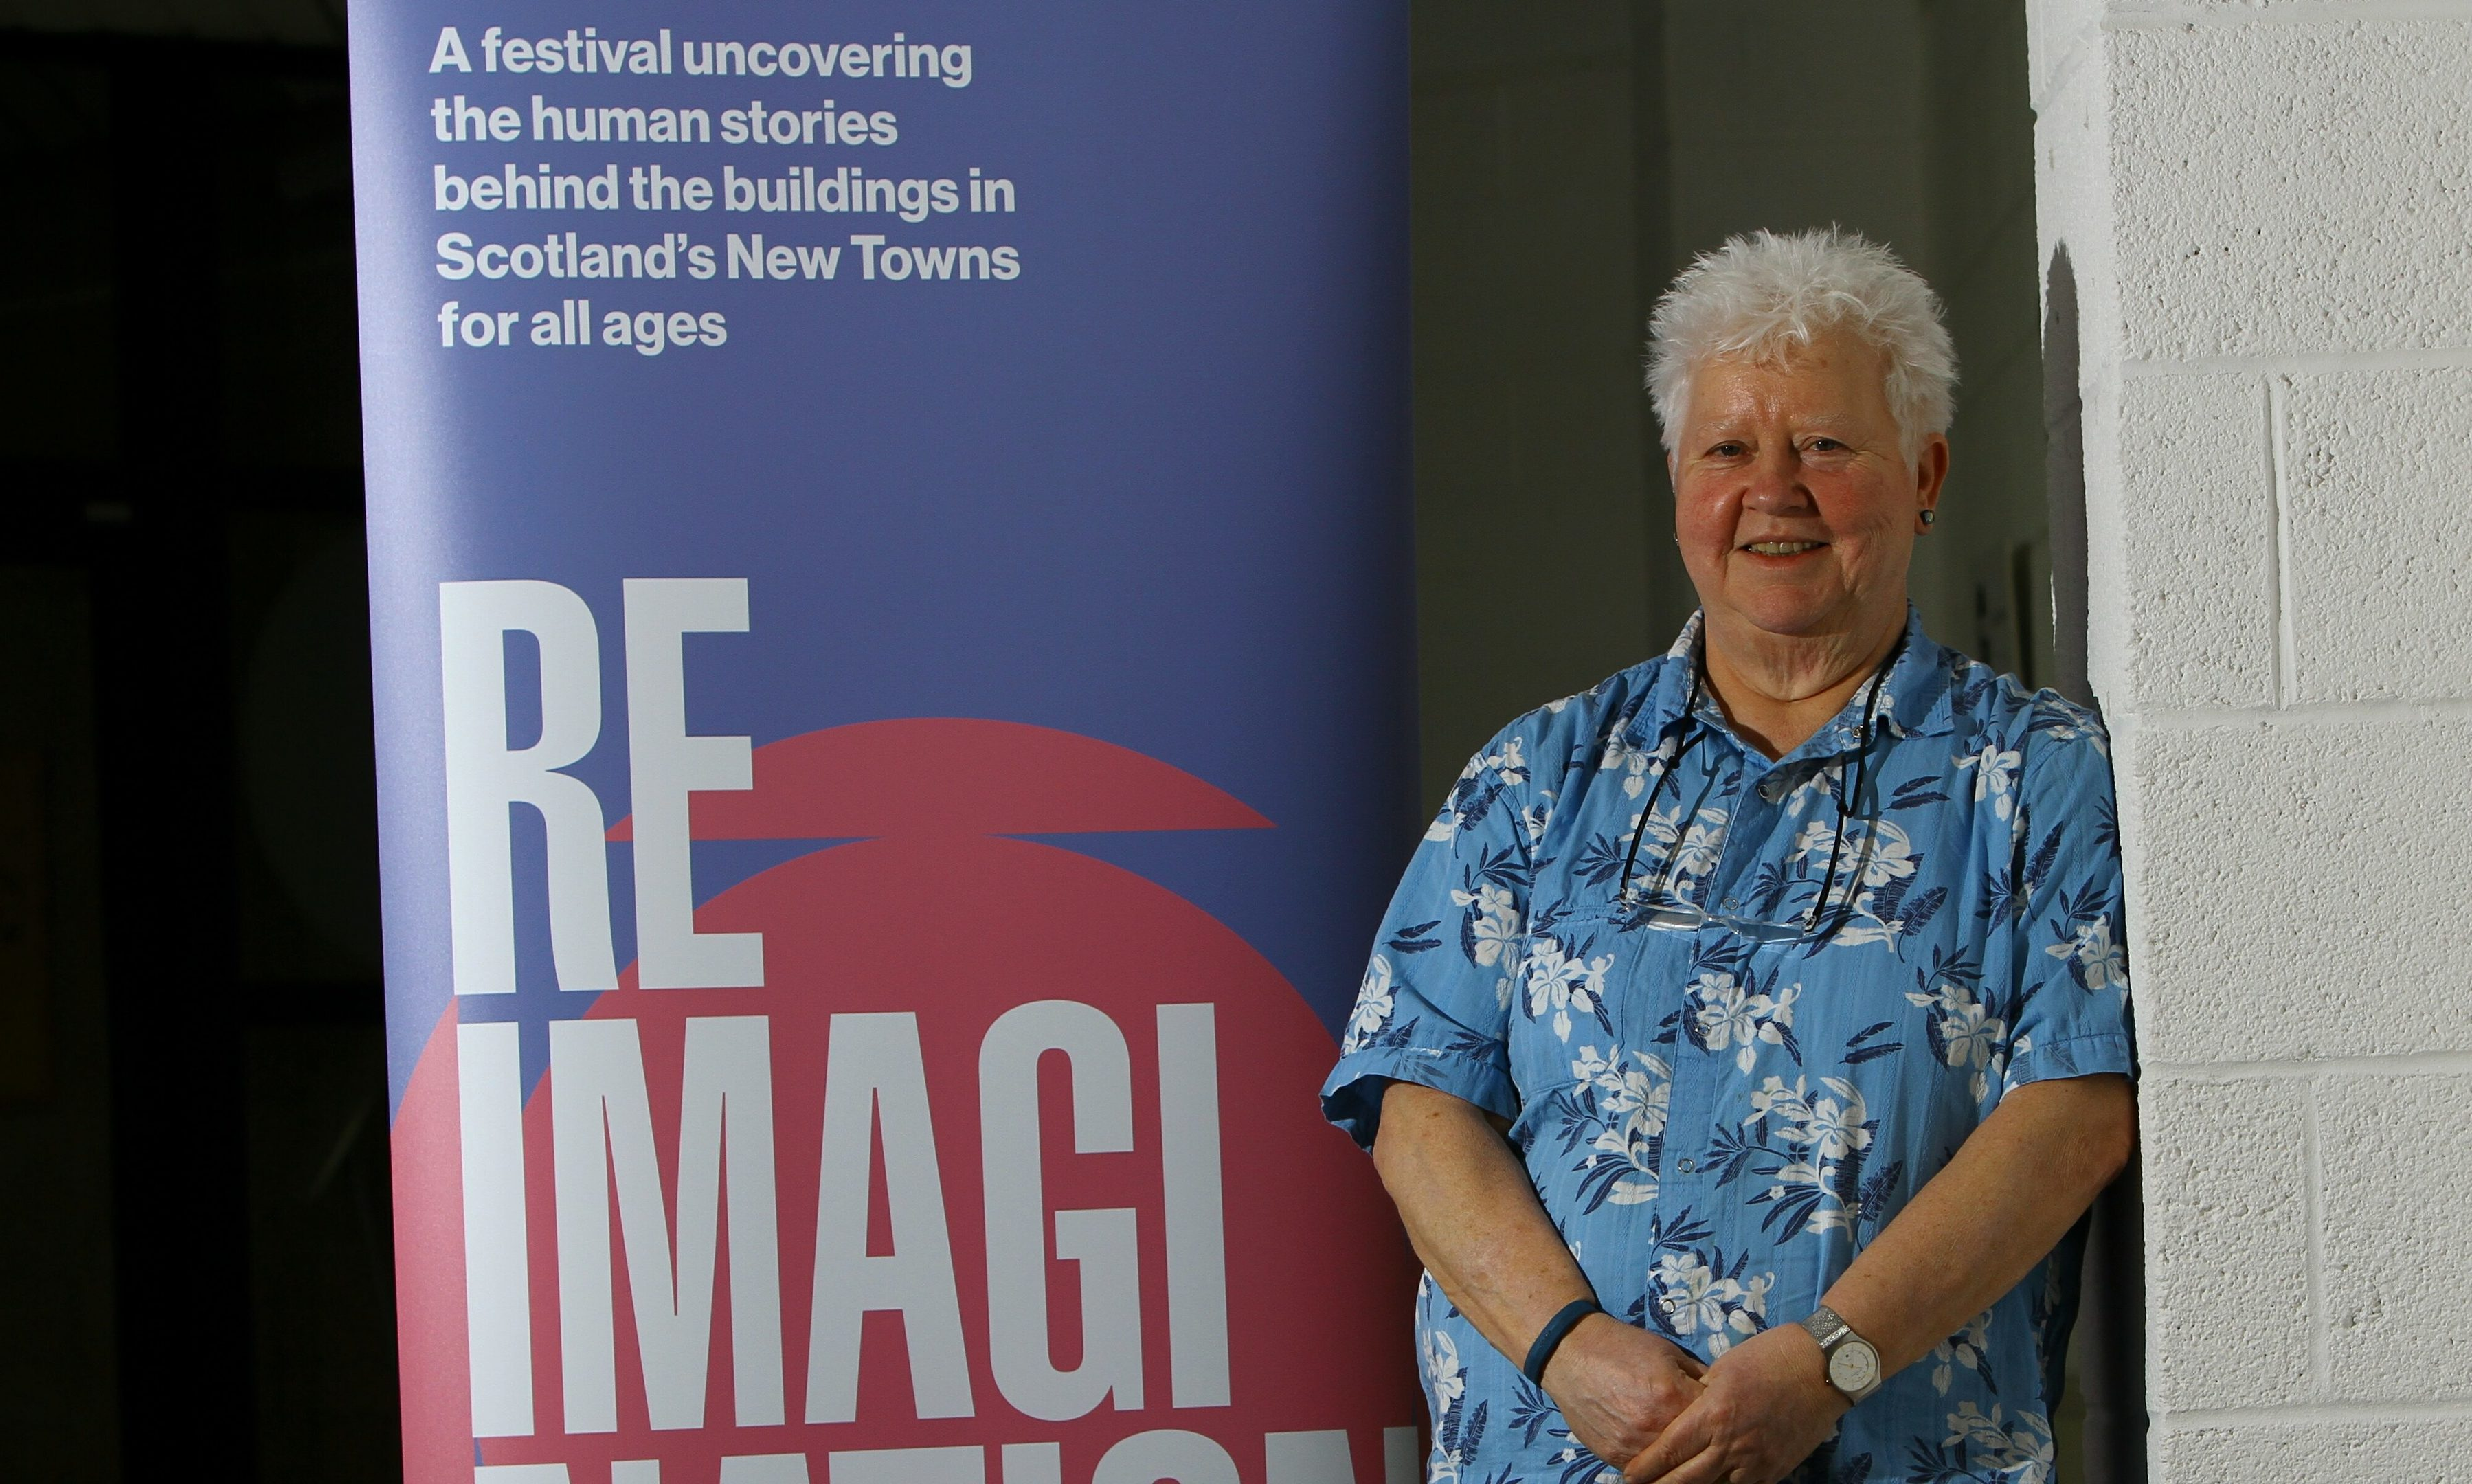 Val McDermid at the Rothes Halls to launch the Reimagination Book Festival.